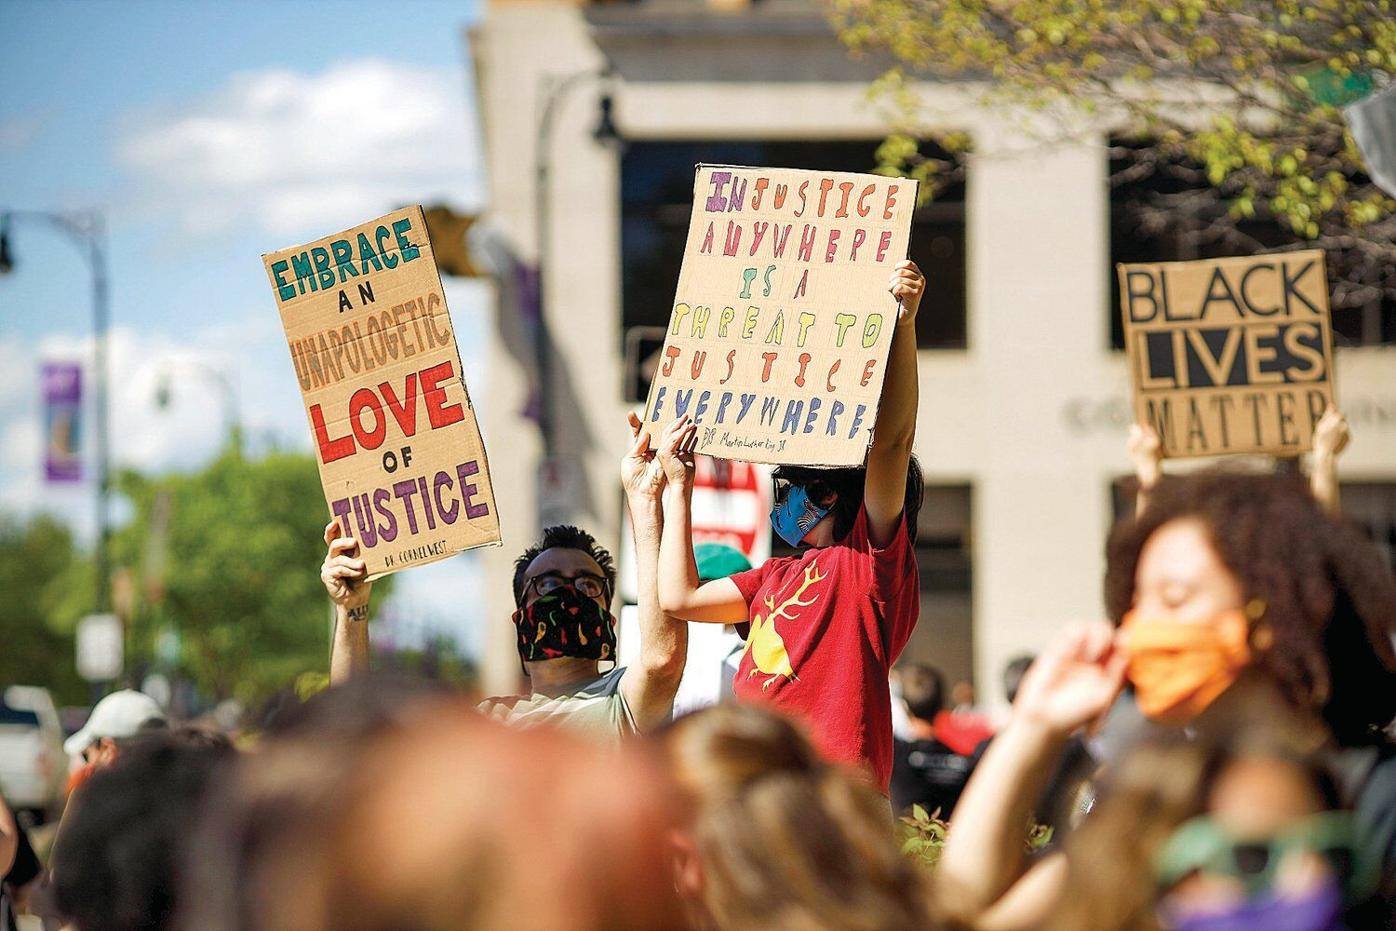 'It has to stop': Protest over death in Minneapolis packs Pittsfield's Park Square